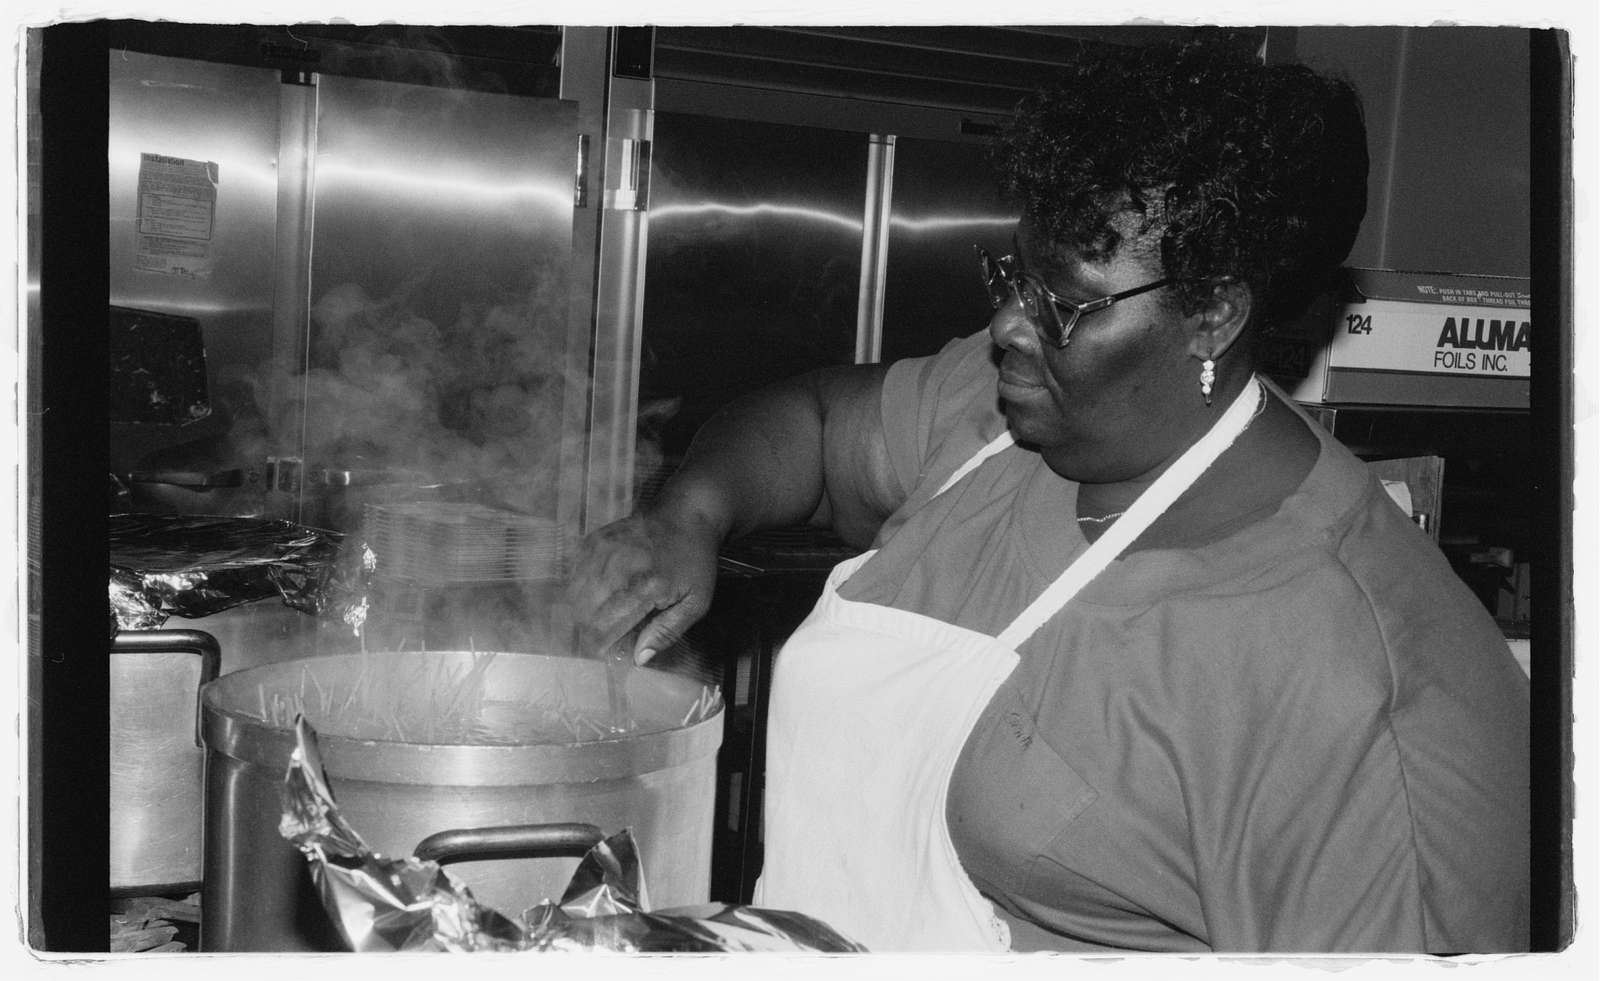 The cook at Memorial Day Care preparing lunch for the students.